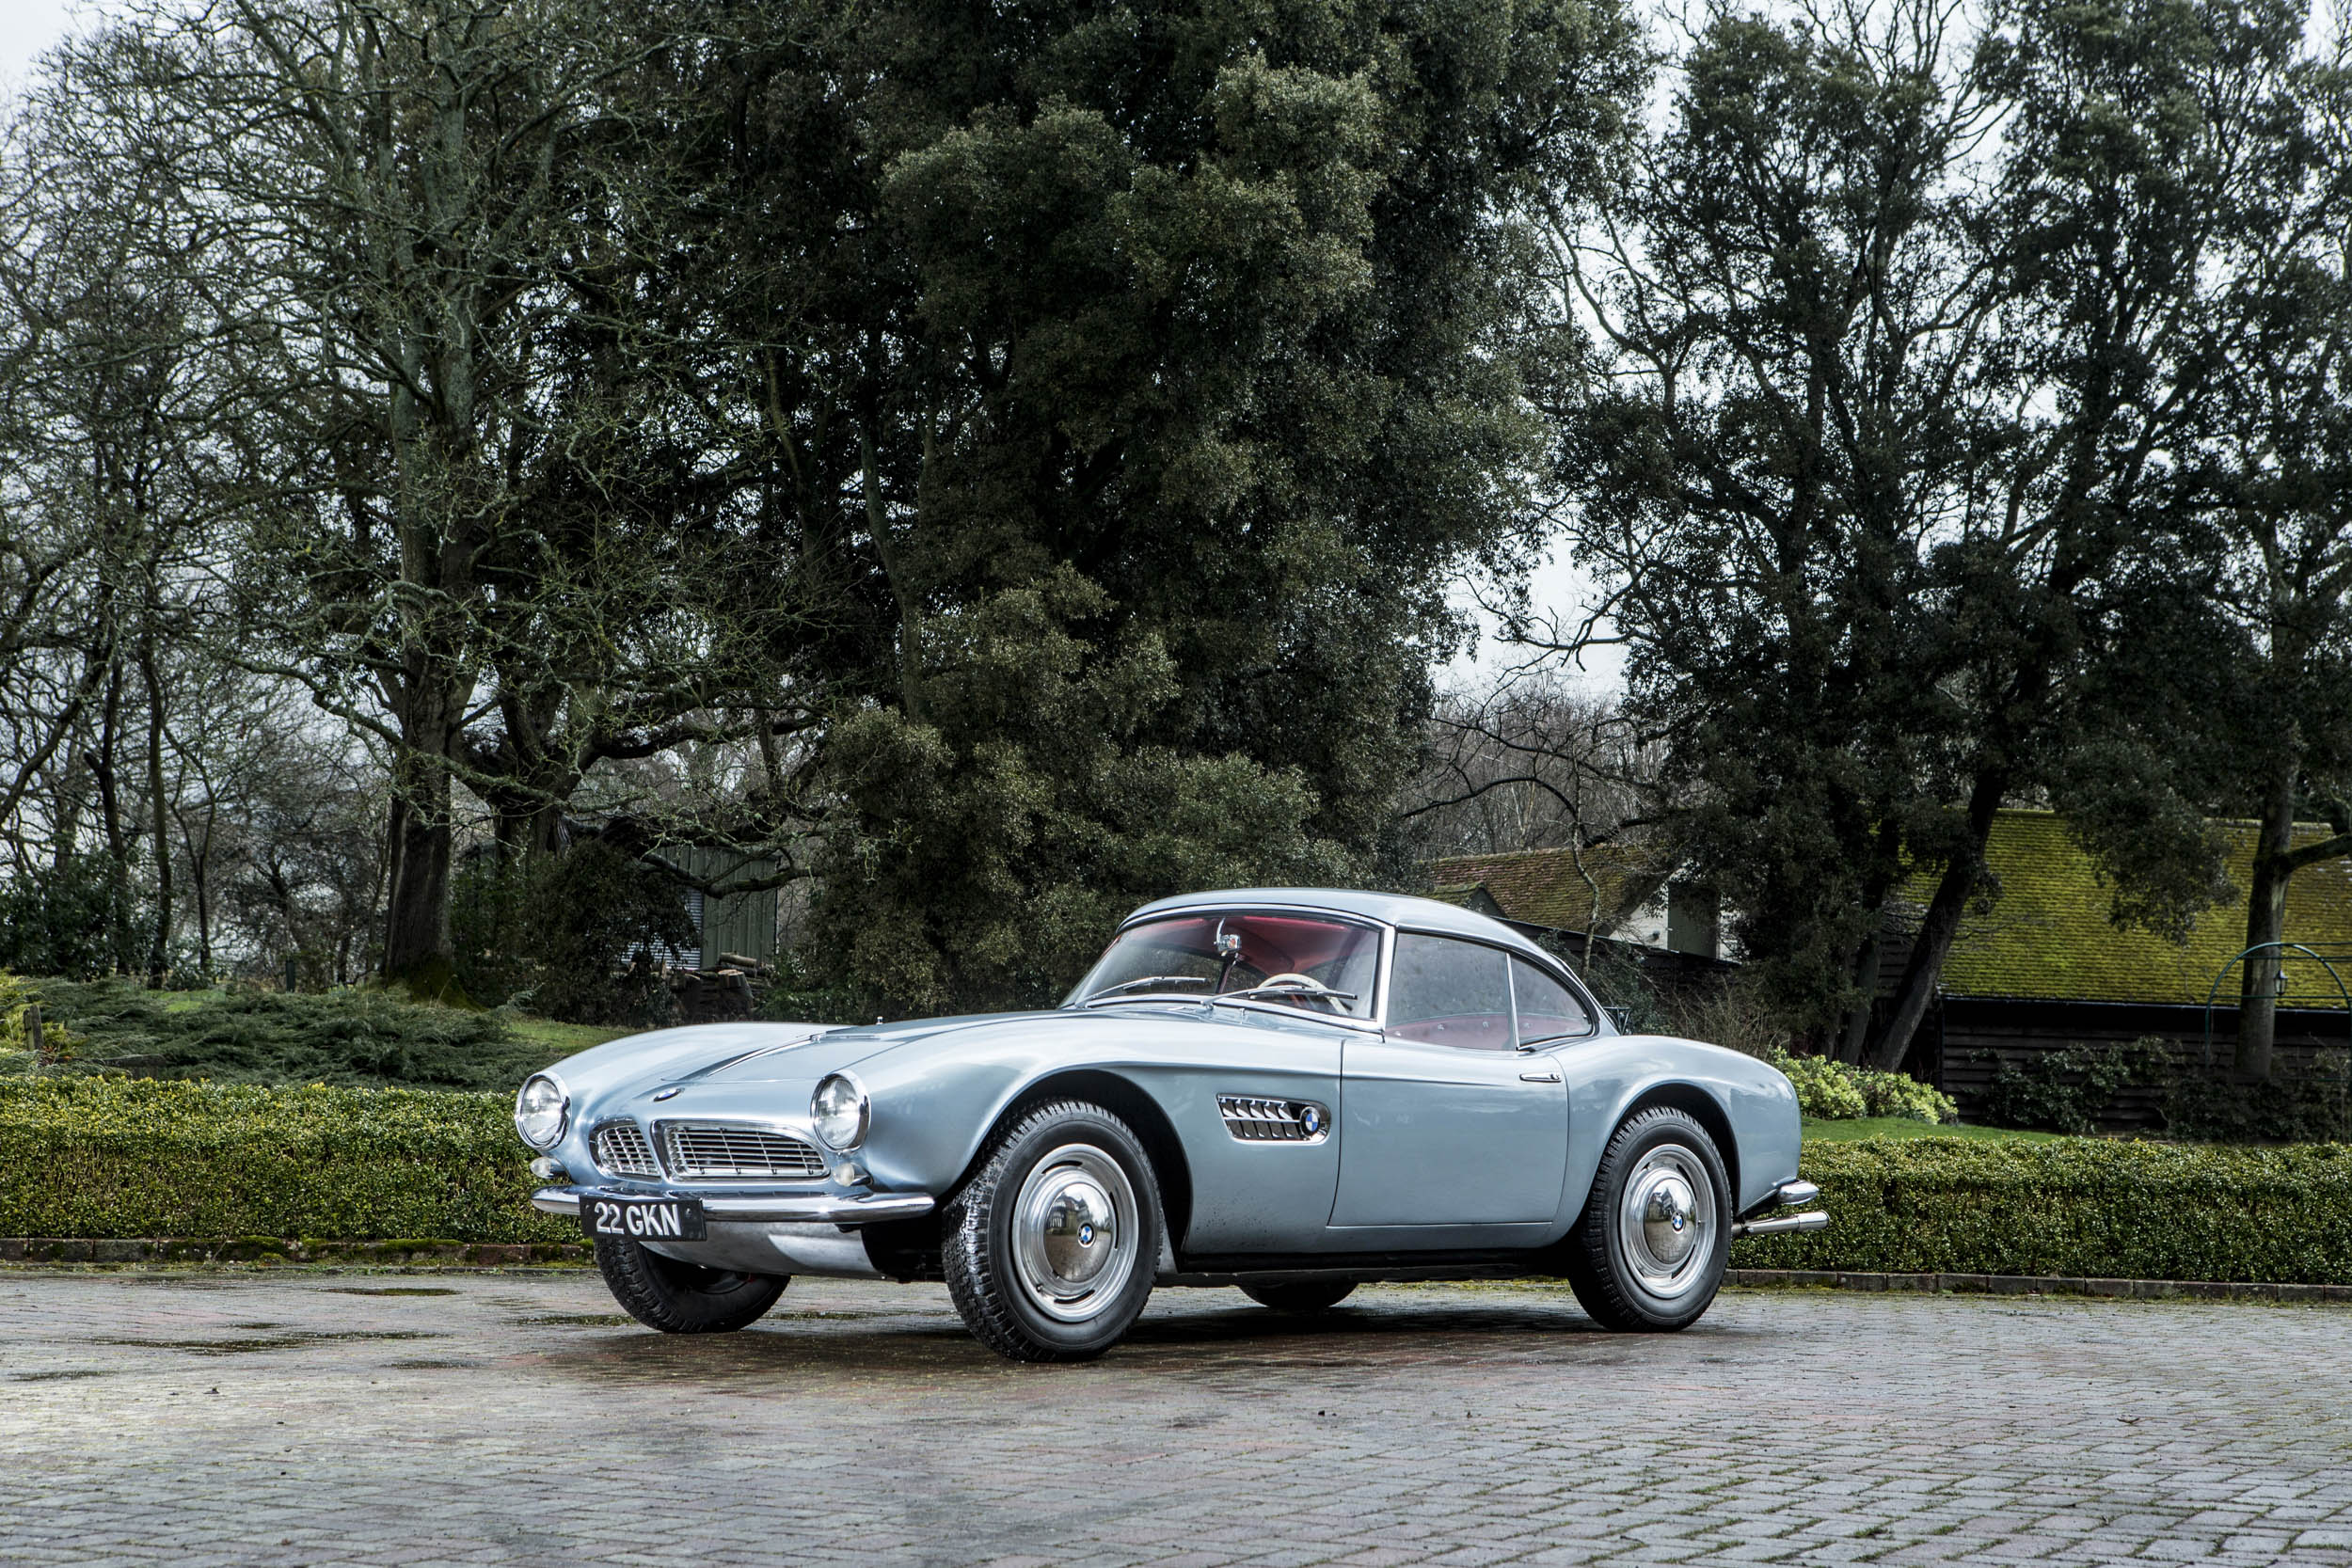 John Surtees' 1957 BMW 507 front 3/4